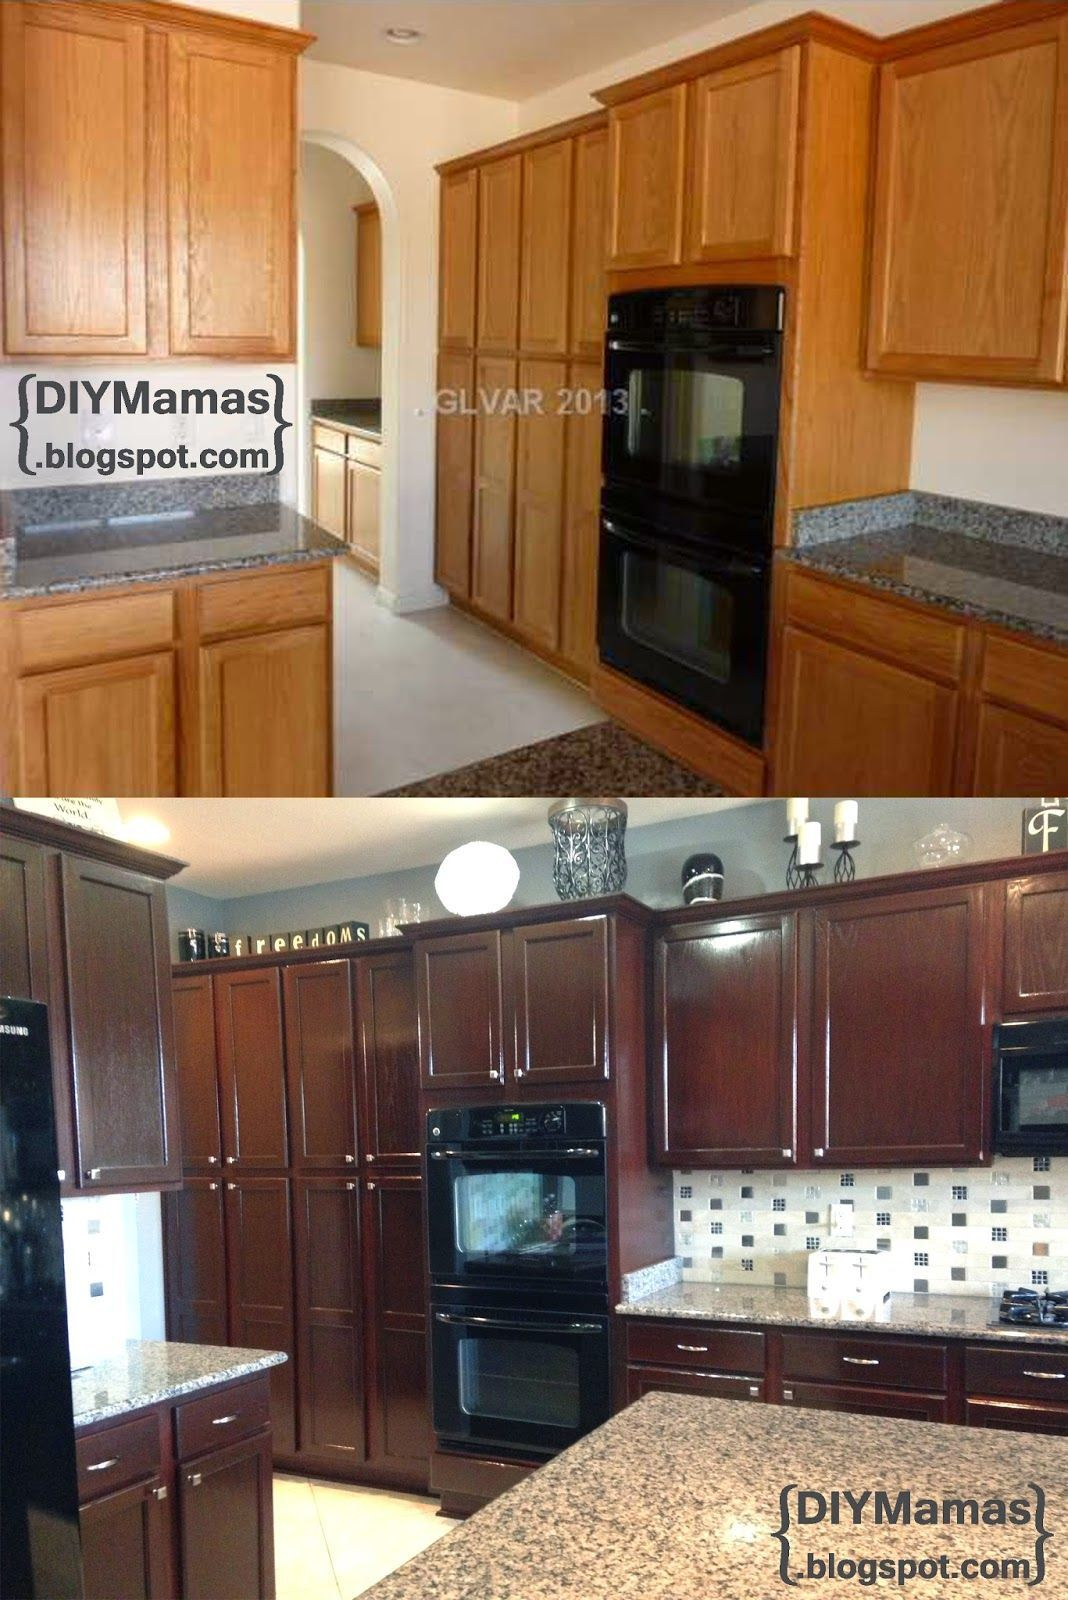 How Much to Stain 2020 in 2020 Stained kitchen